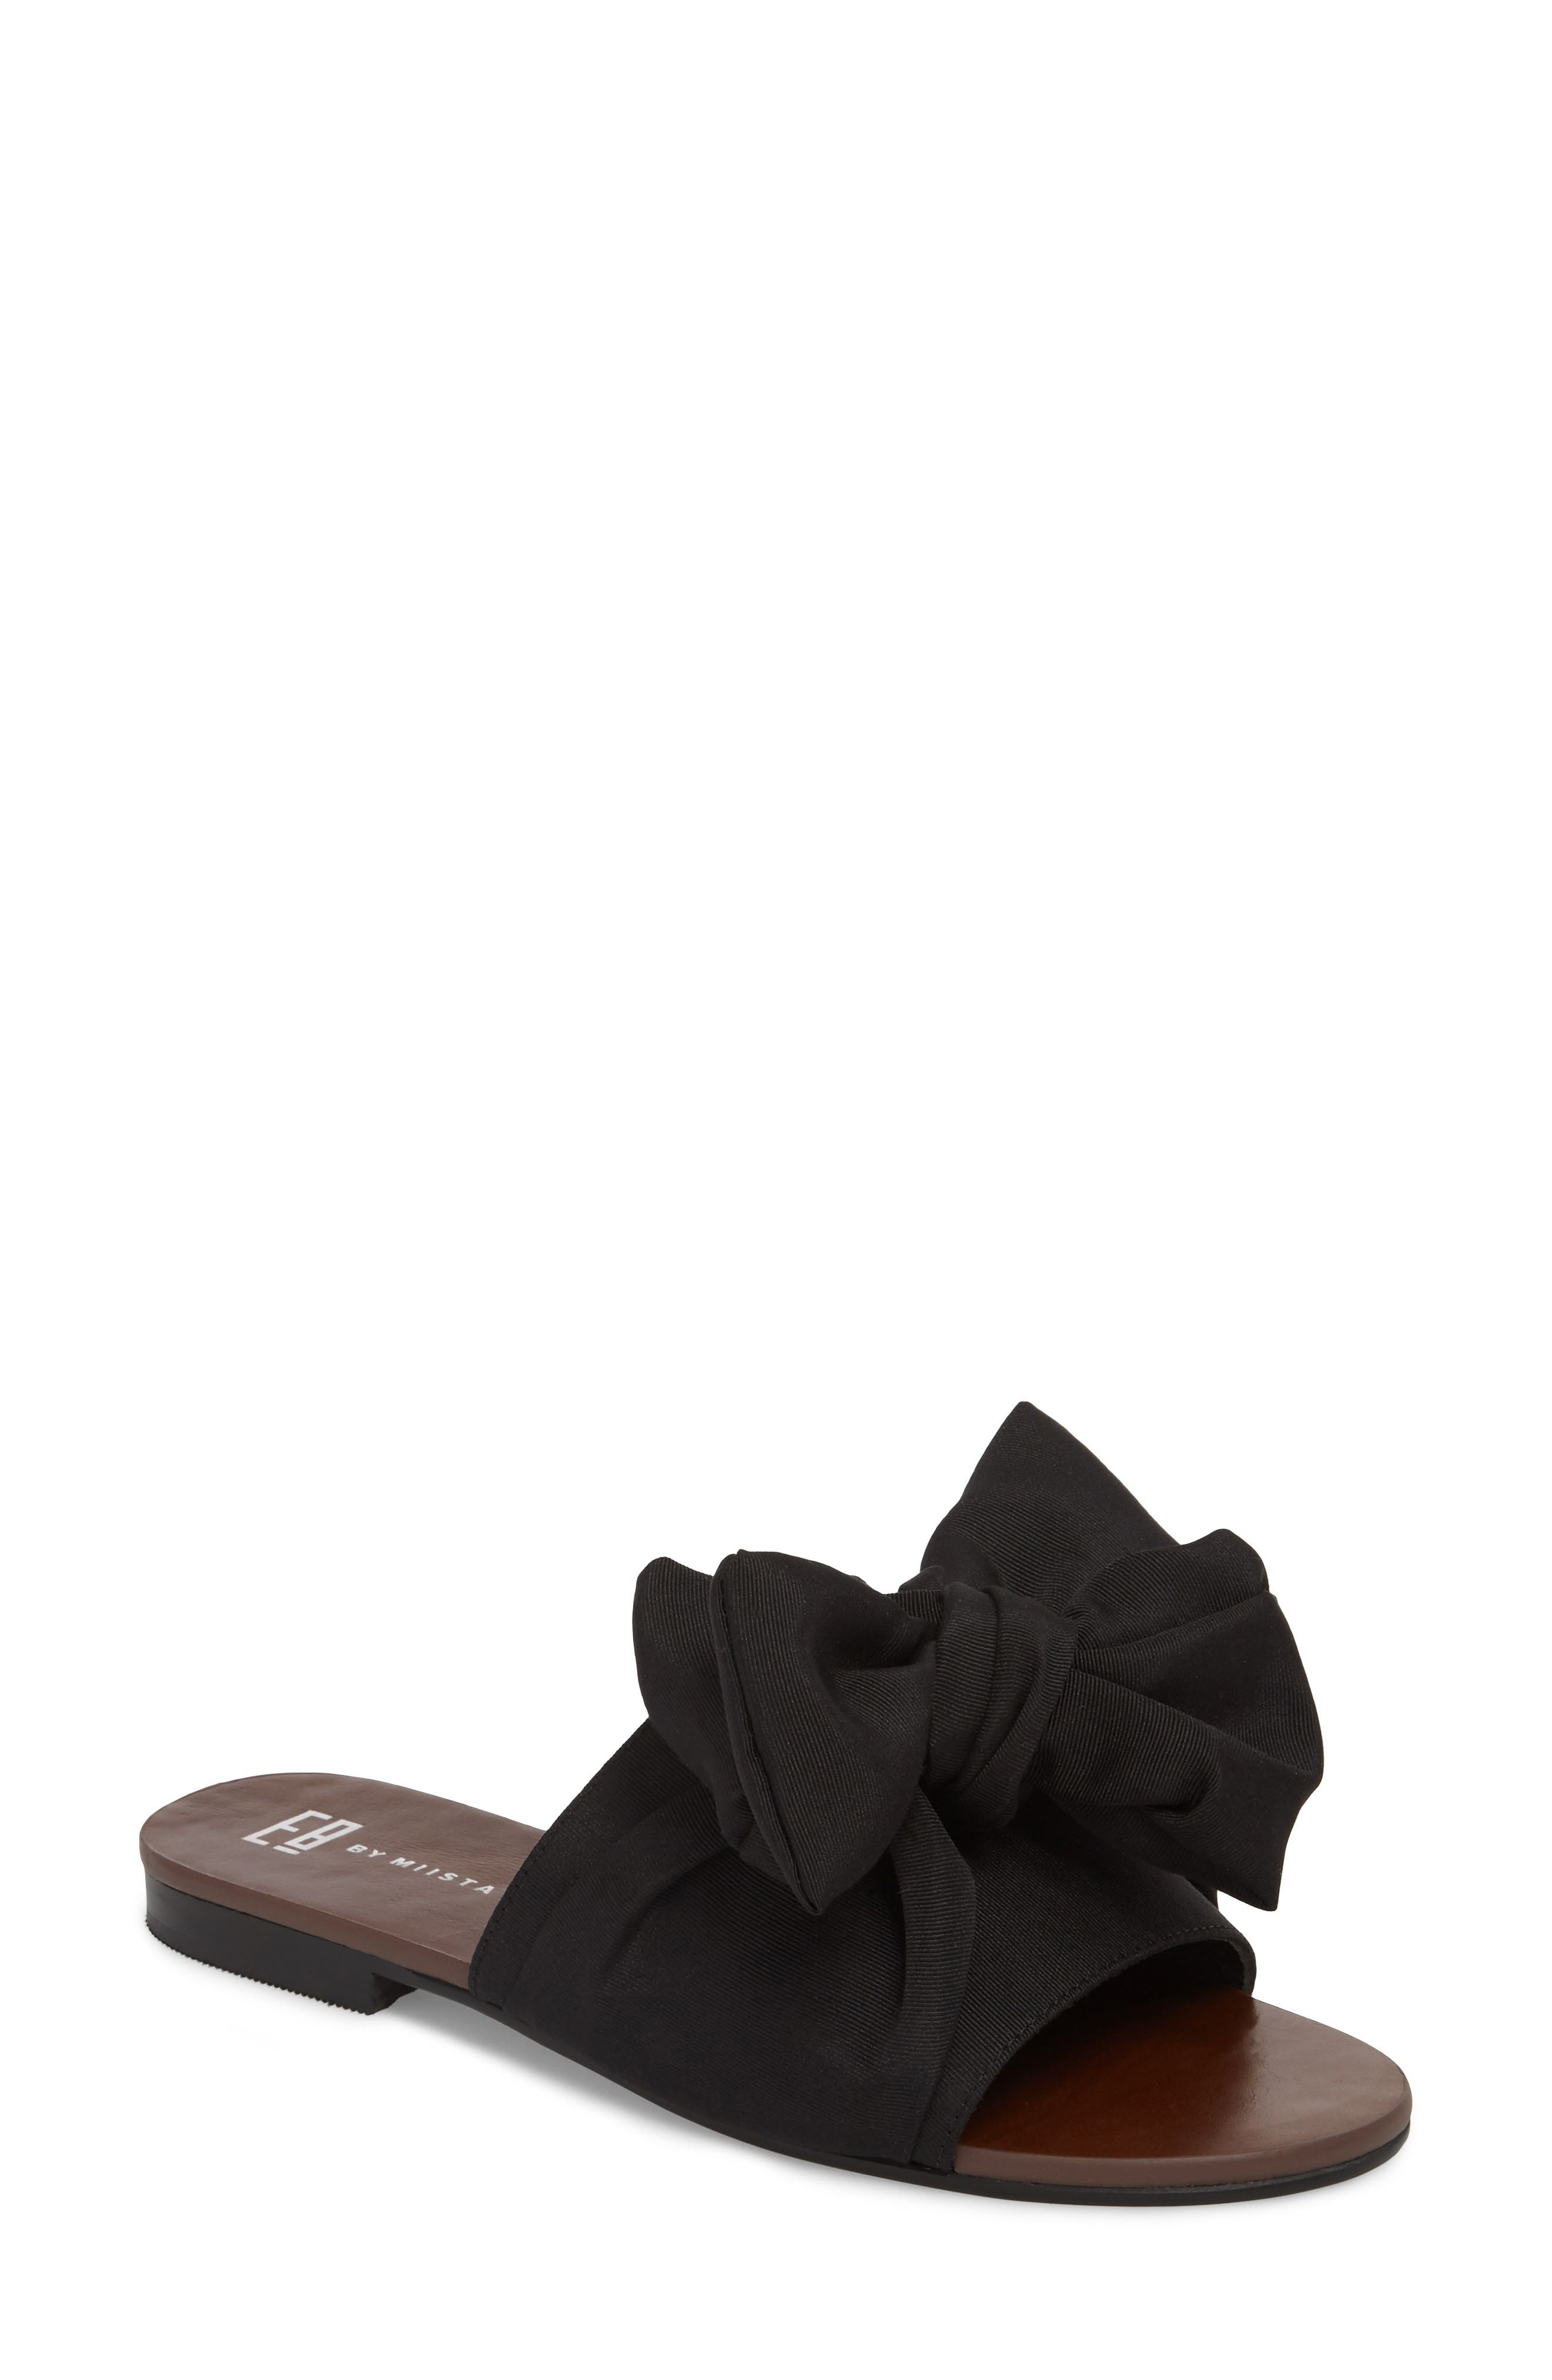 E8 By Miista Peggy Slide Sandal (Women)